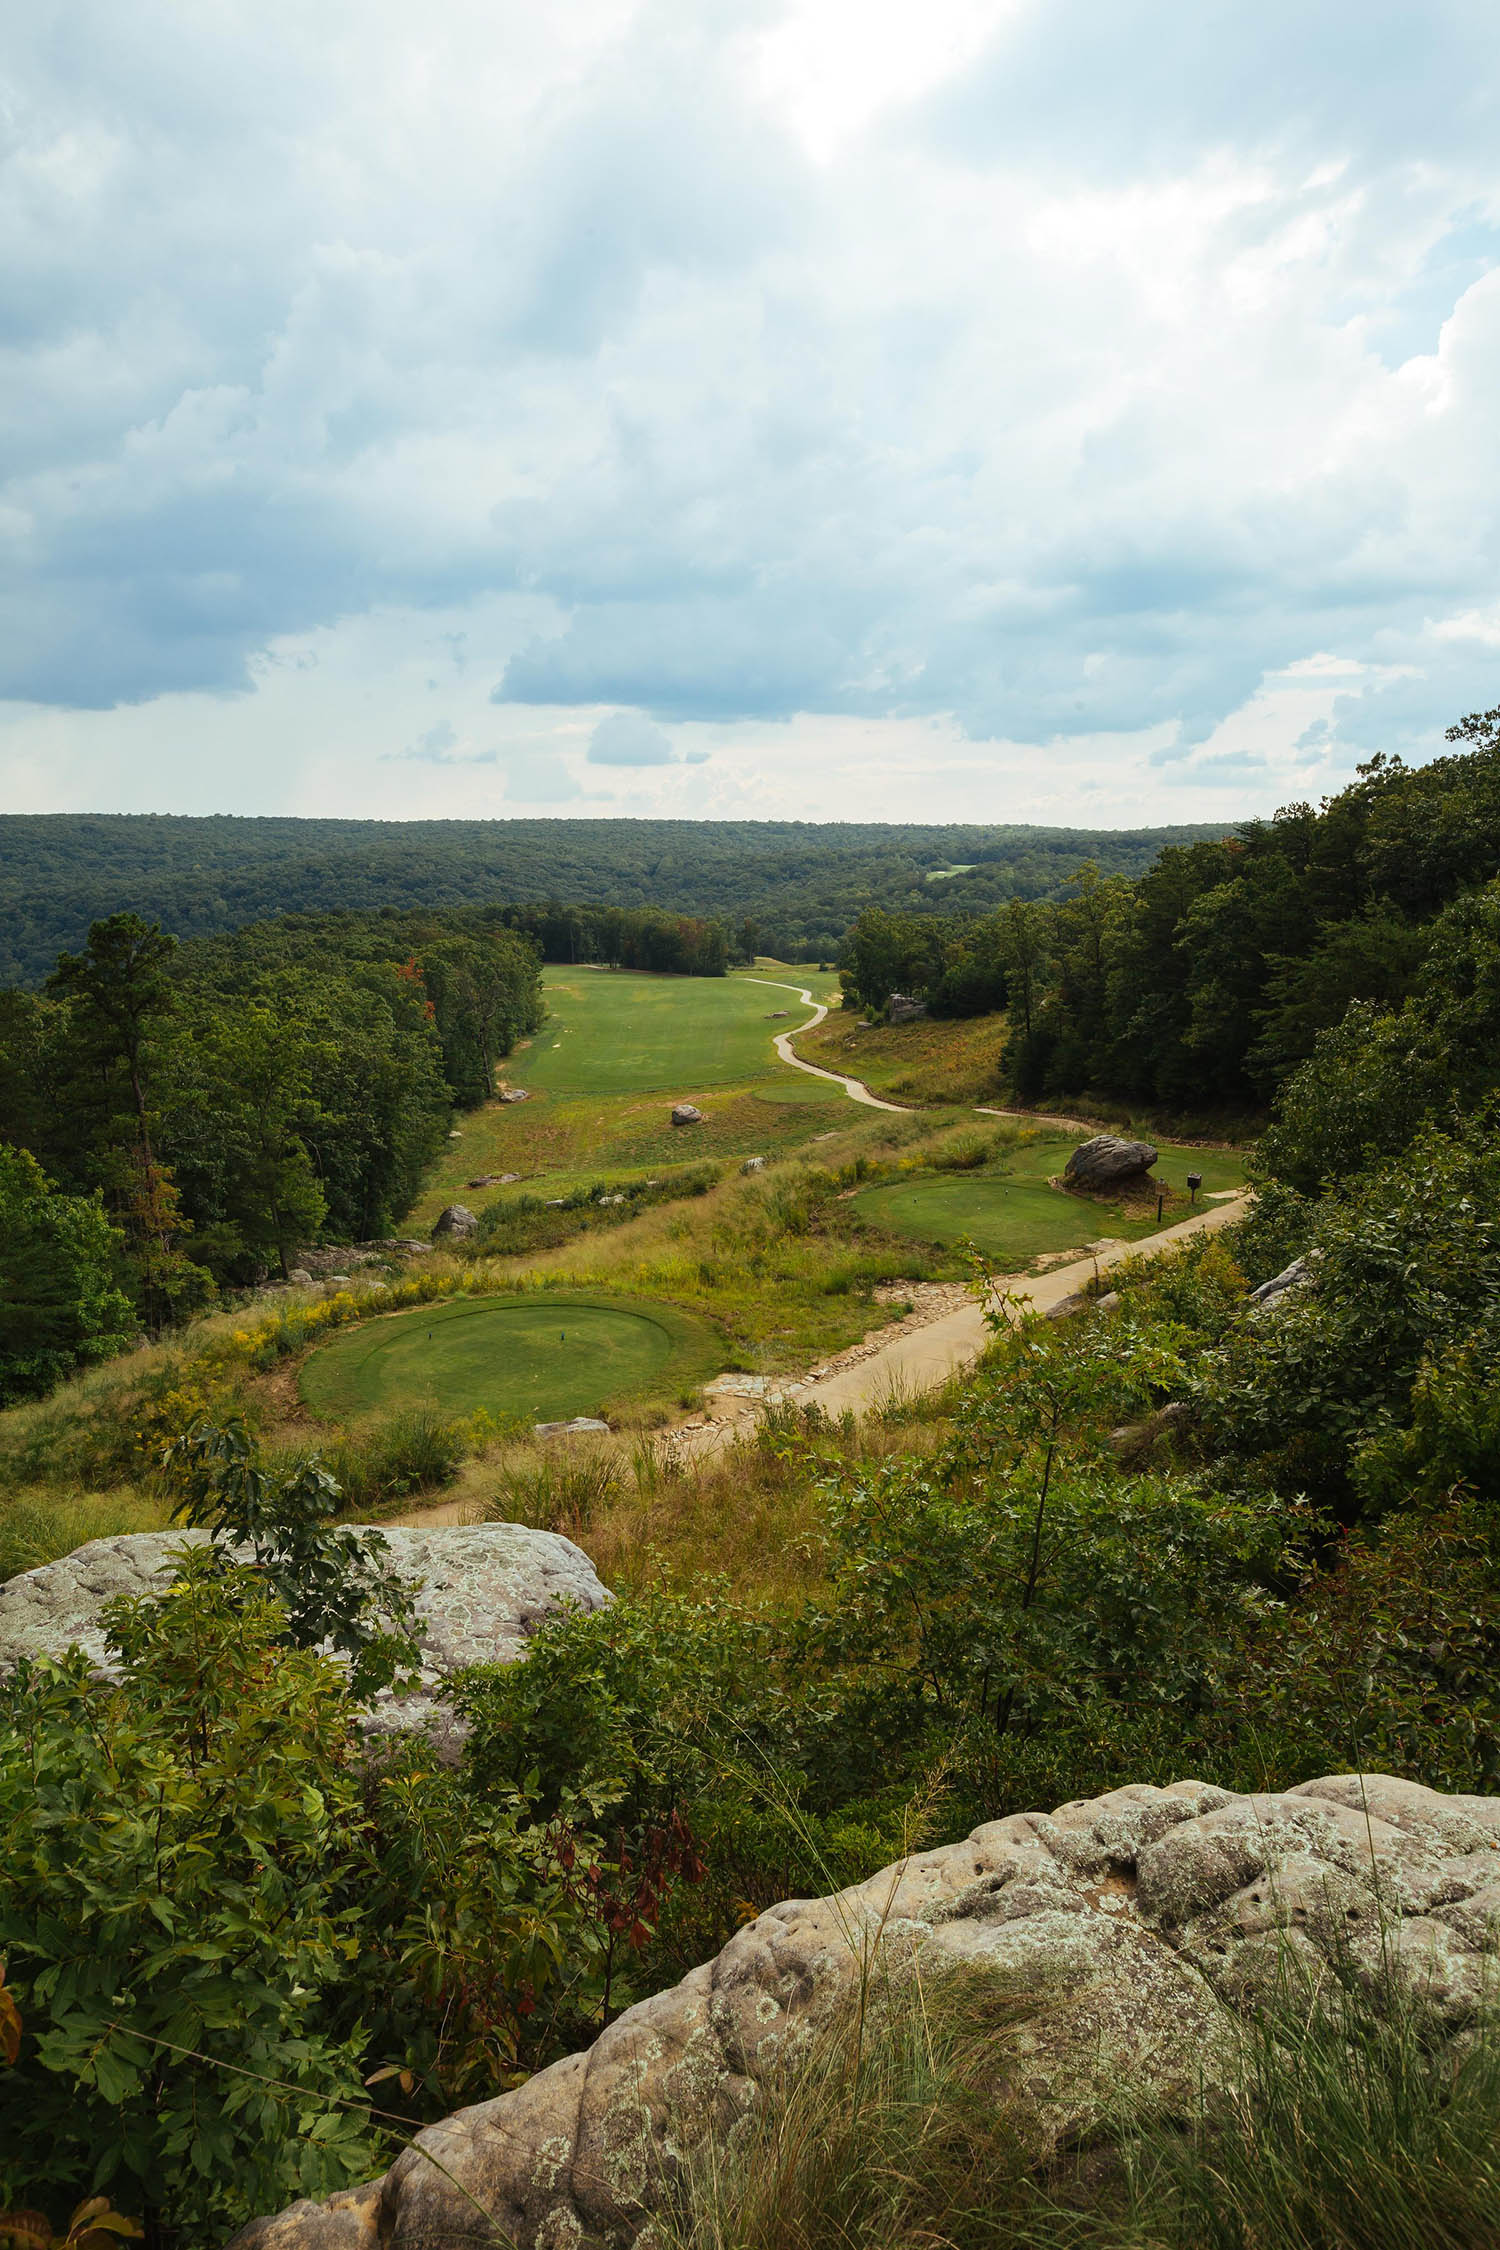 McLemore_Resort_LookoutMountain_Golf_Course_Golf_MCL_1_Teebox.jpg